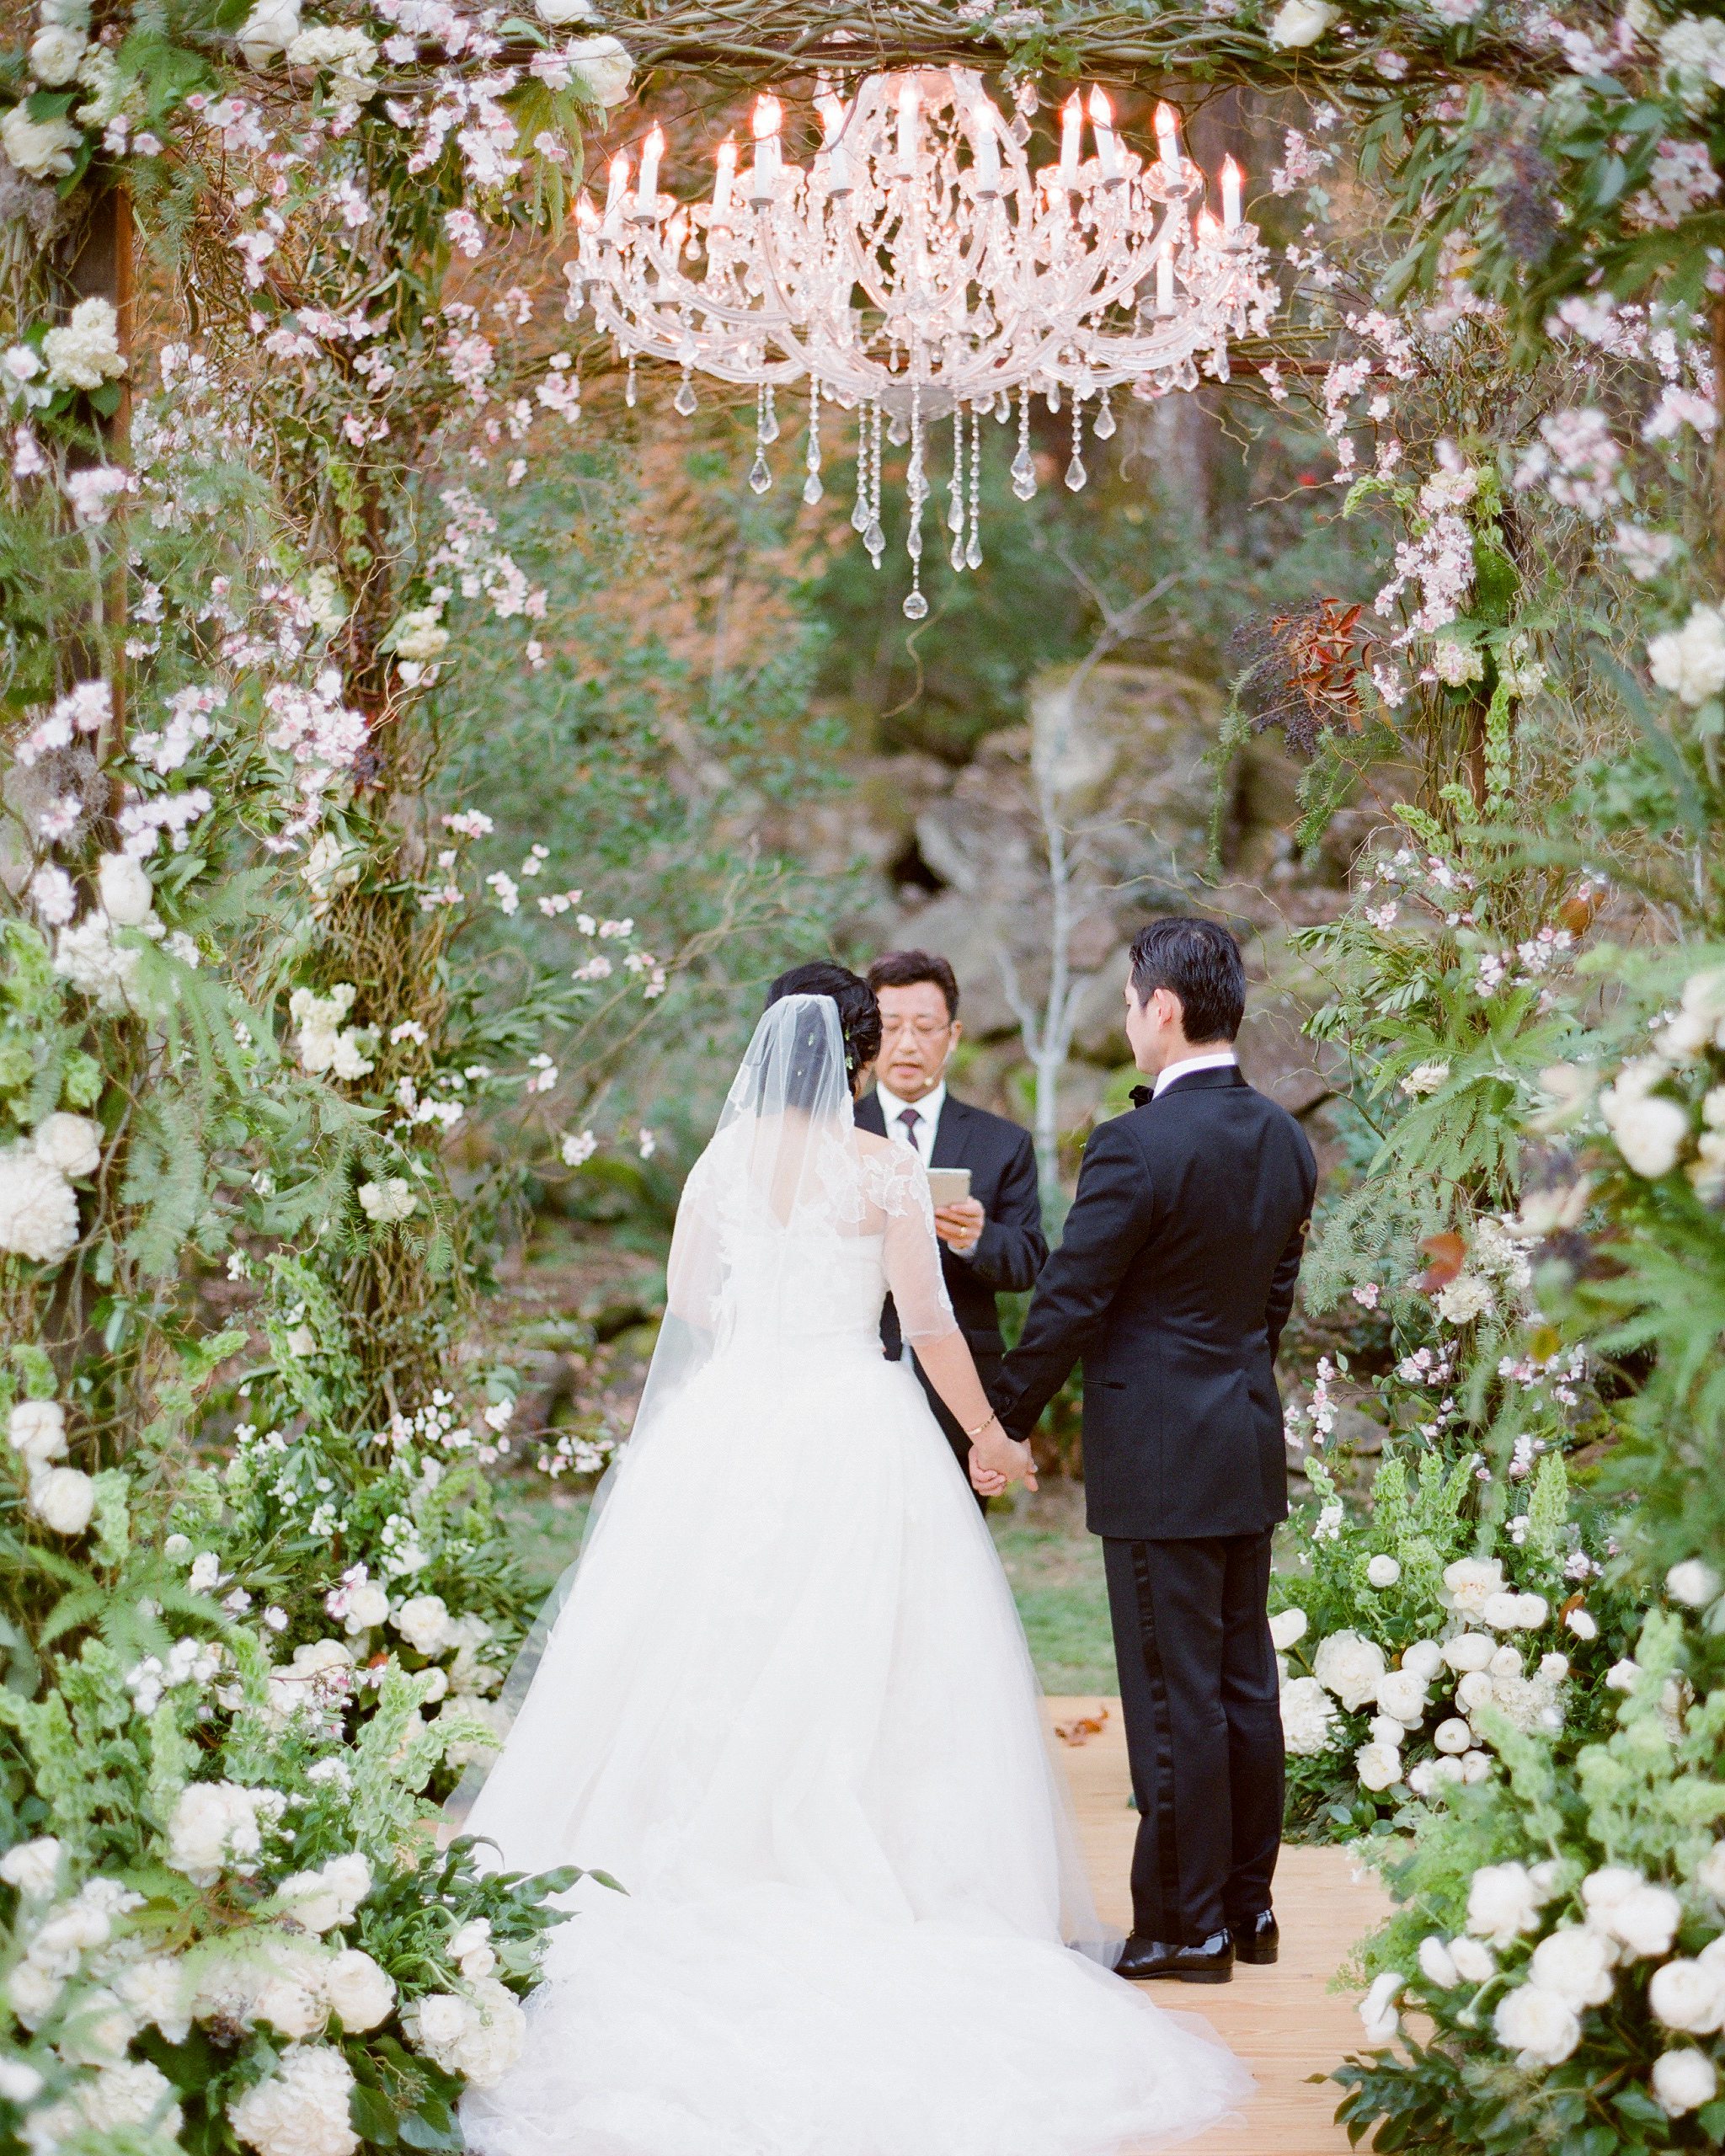 Adriana and Han's Storybook-Inspired Wedding Video